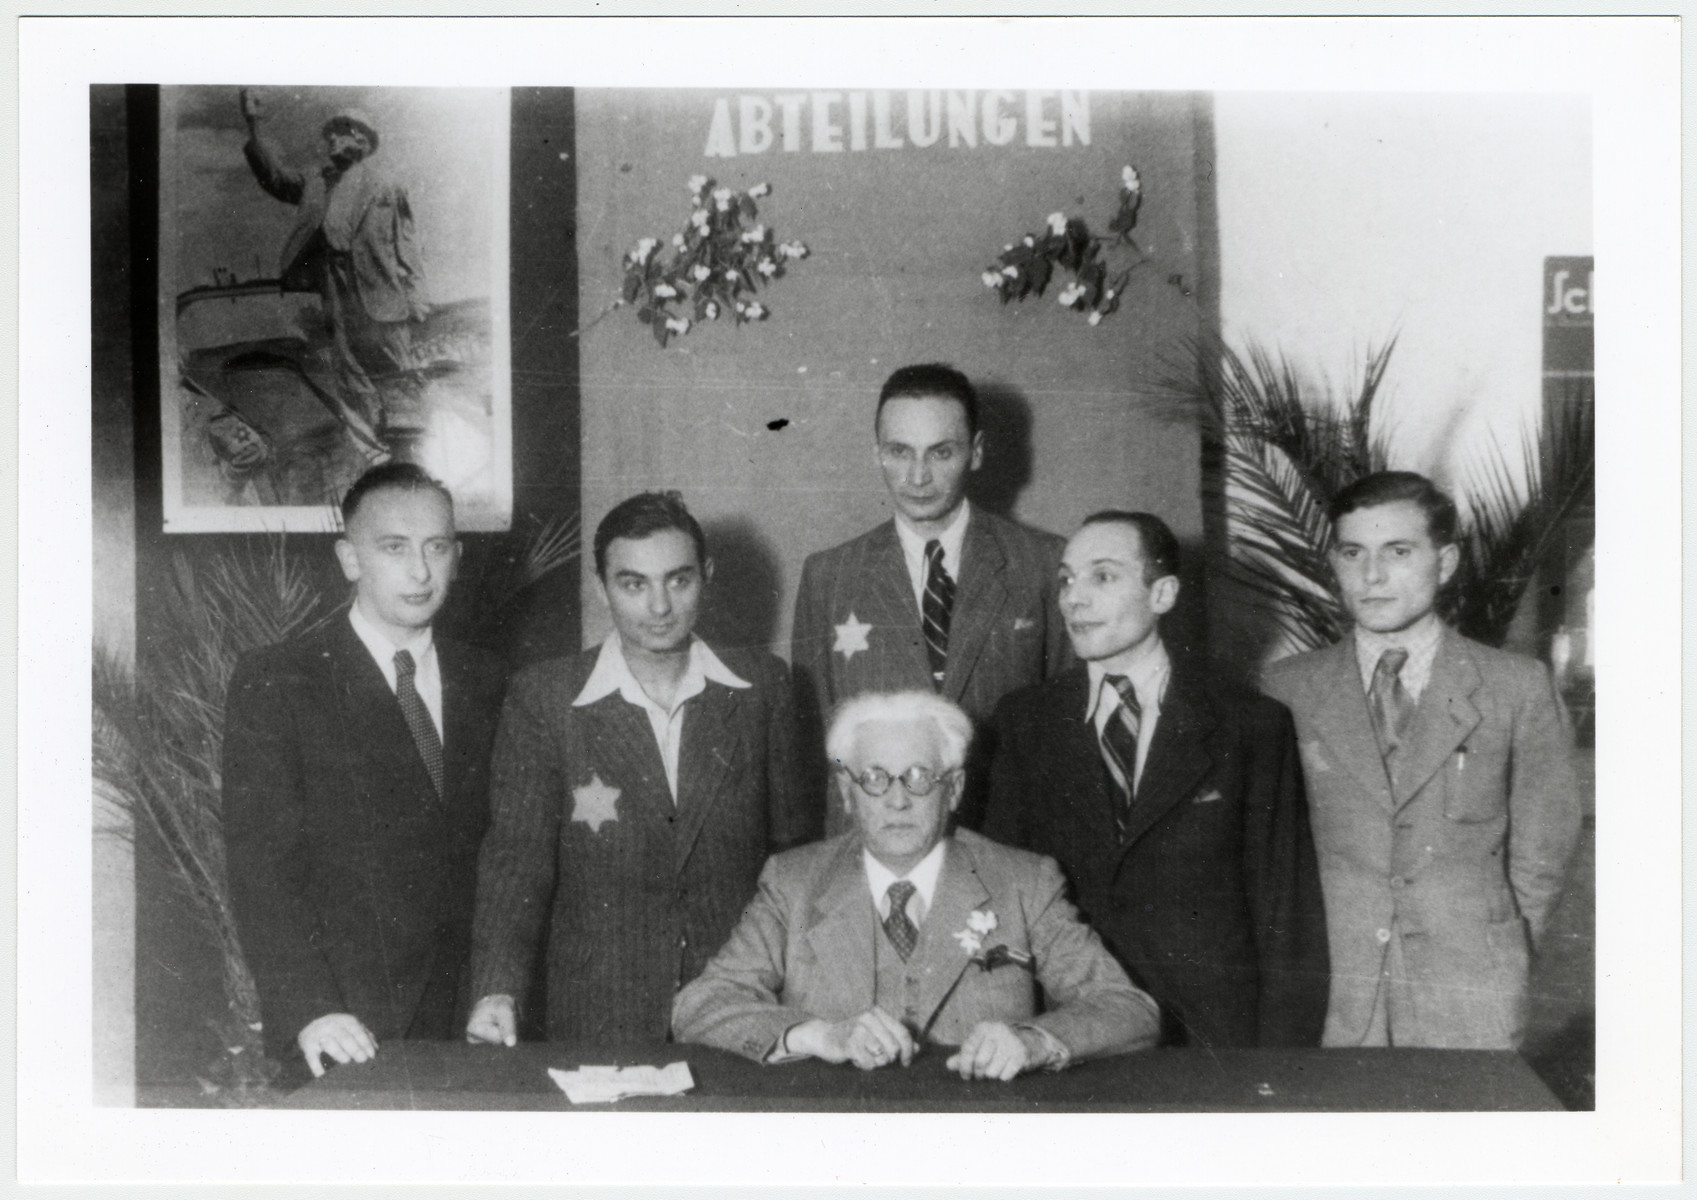 Mordechai Chaim Rumkowski and other officials pose for a group portrait by a desk underneath a banner and a large portrait of Rumkowski.  Among those pictured, on the far right, is donor's husband, Pinchas Szwarc (later Shaar), and second from the left is Henryk Neftalin who was responsible for many of the ghetto's administrative branches including the registration bureau, the department  of statistics, the Rabinical bureau, and the photography studio as well.